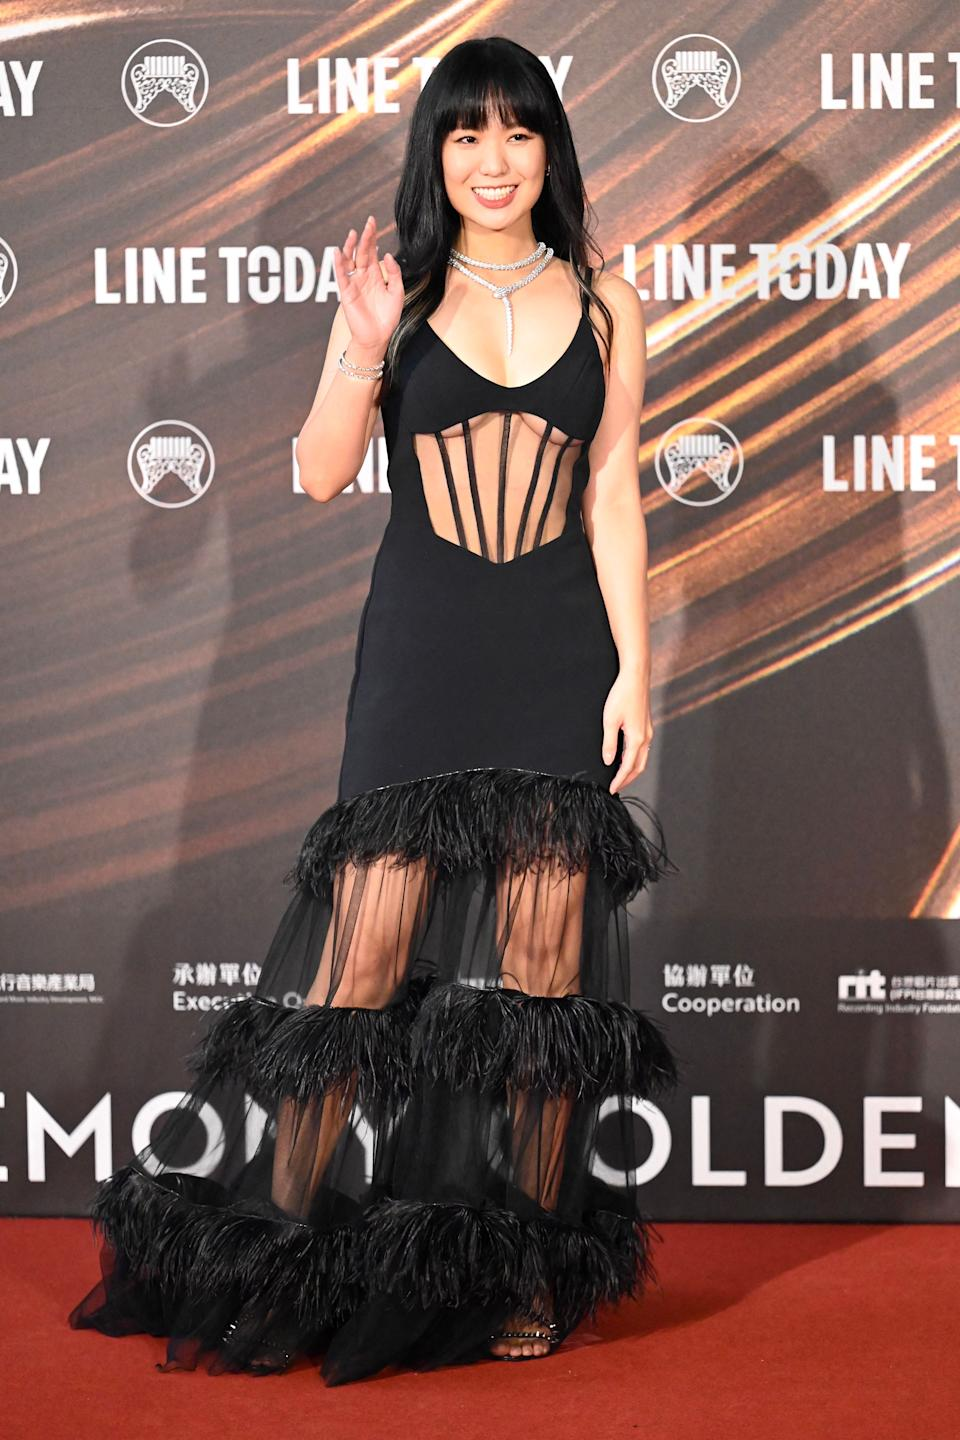 Taiwanese singer Shi Shi poses for photographs upon her arrival for the 32nd Golden Melody Awards in Taipei on August 21, 2021. (Photo by Sam Yeh / AFP) (Photo by SAM YEH/AFP via Getty Images)